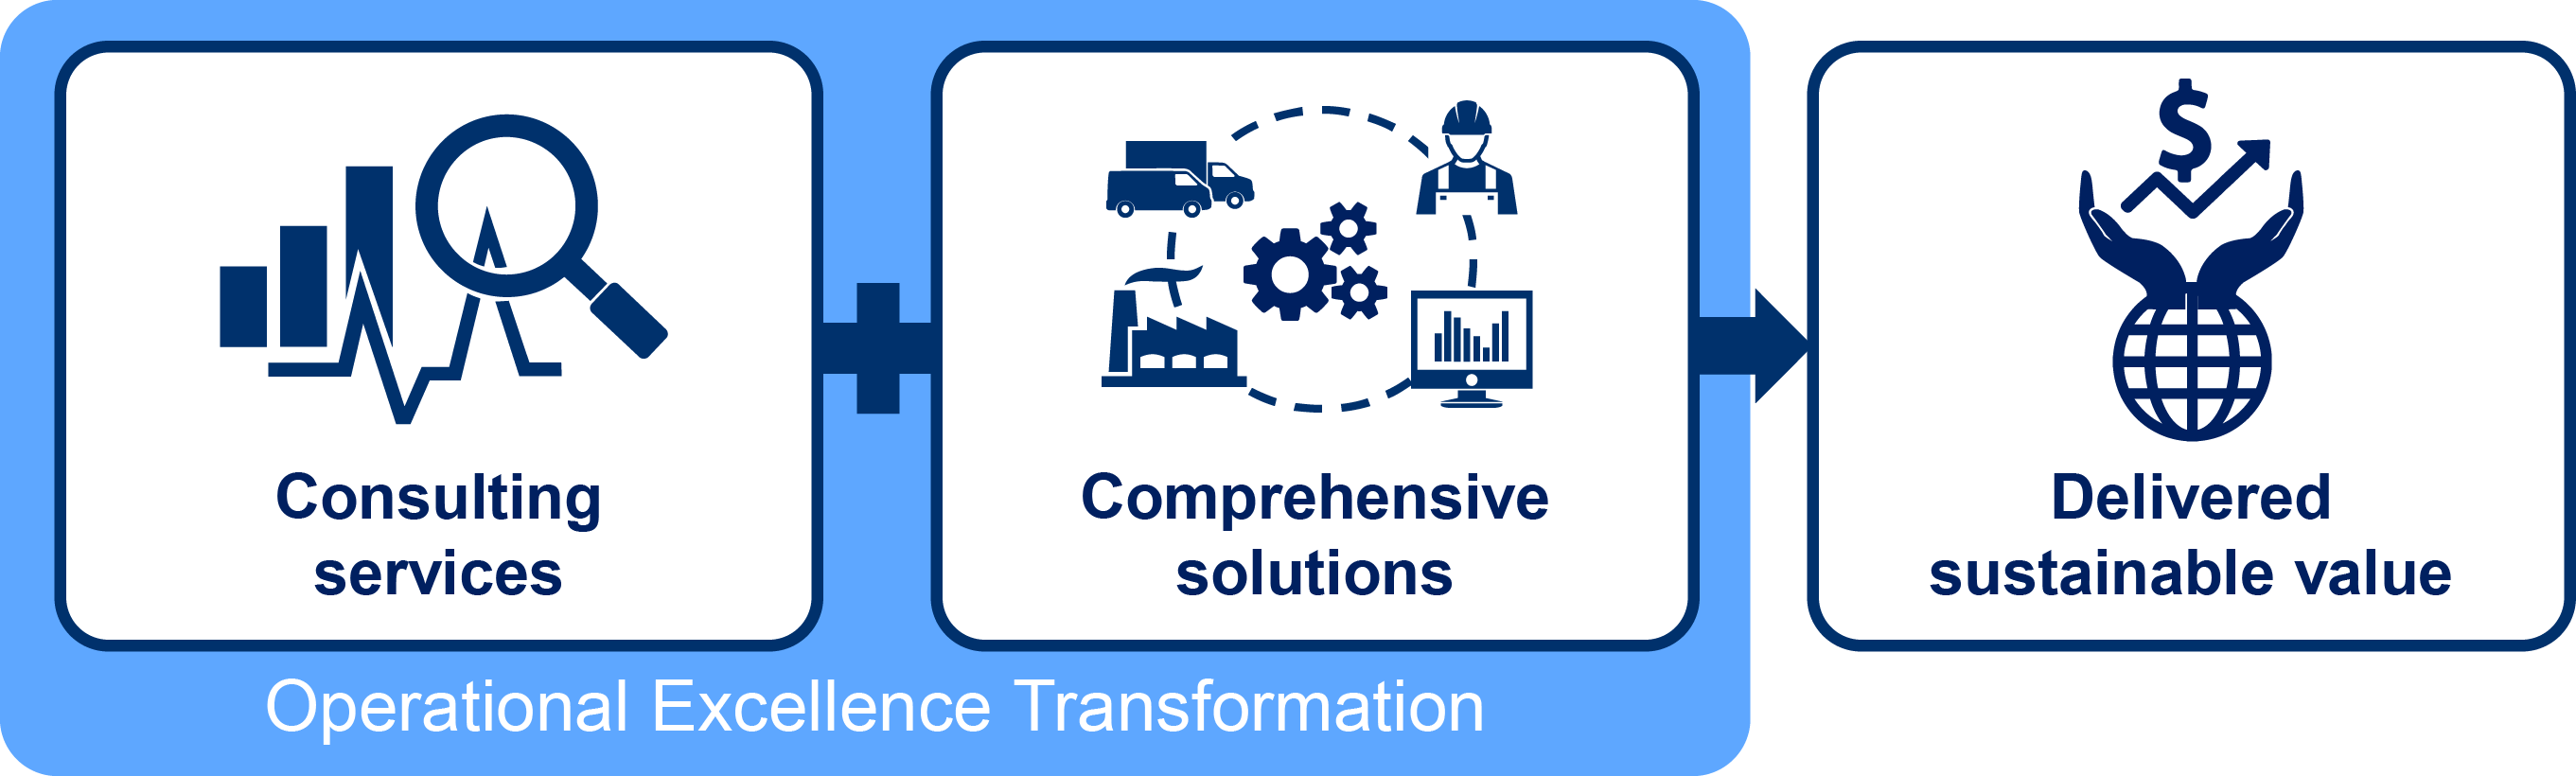 Operational Excellence Transformation.